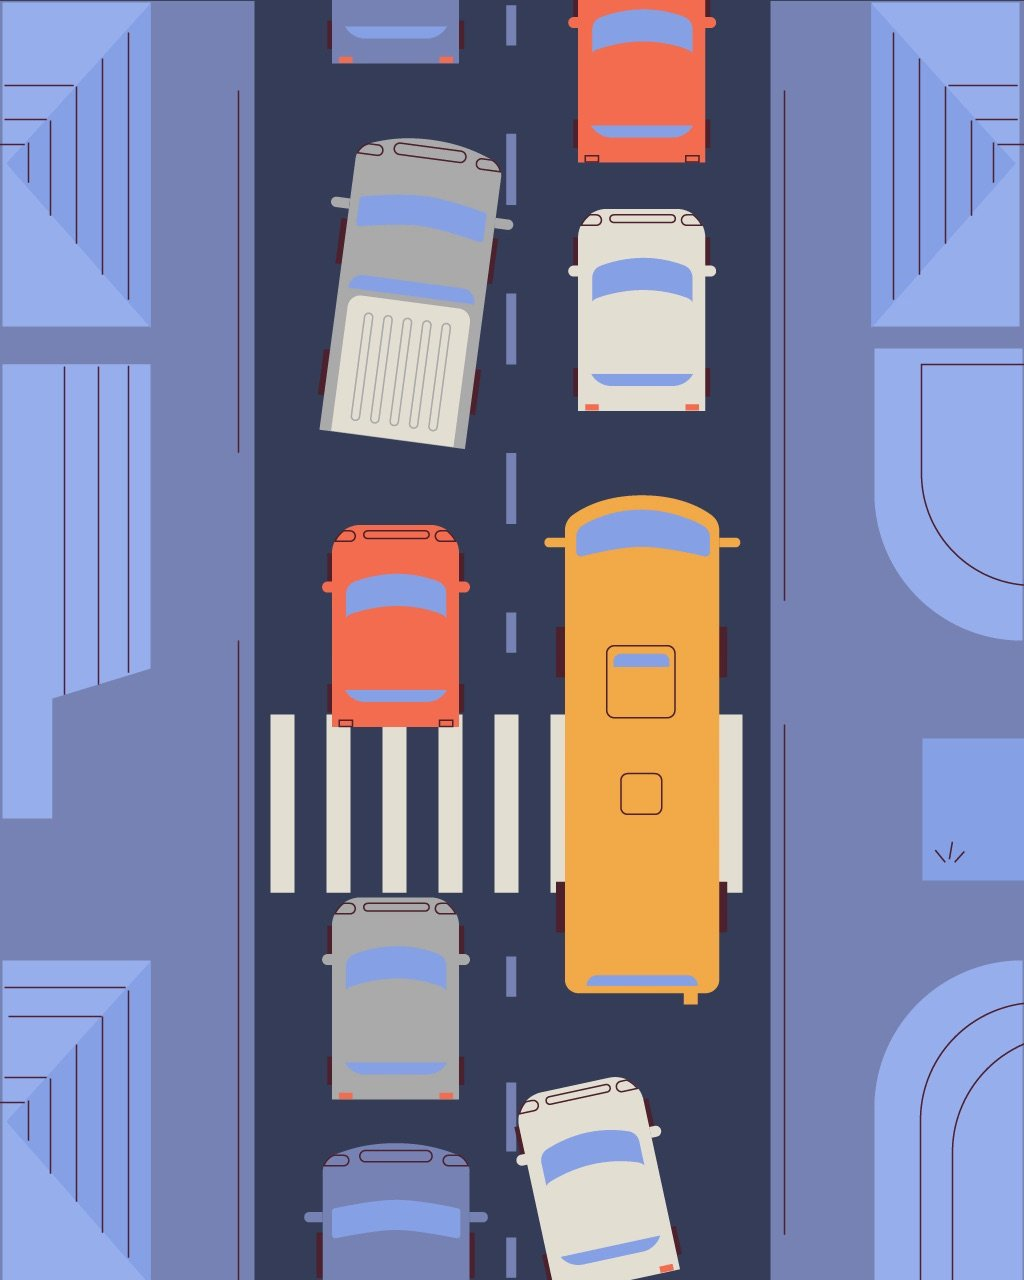 illustration for an explainer video animation made for Wag, a dog walking service. It shows a traffic jam